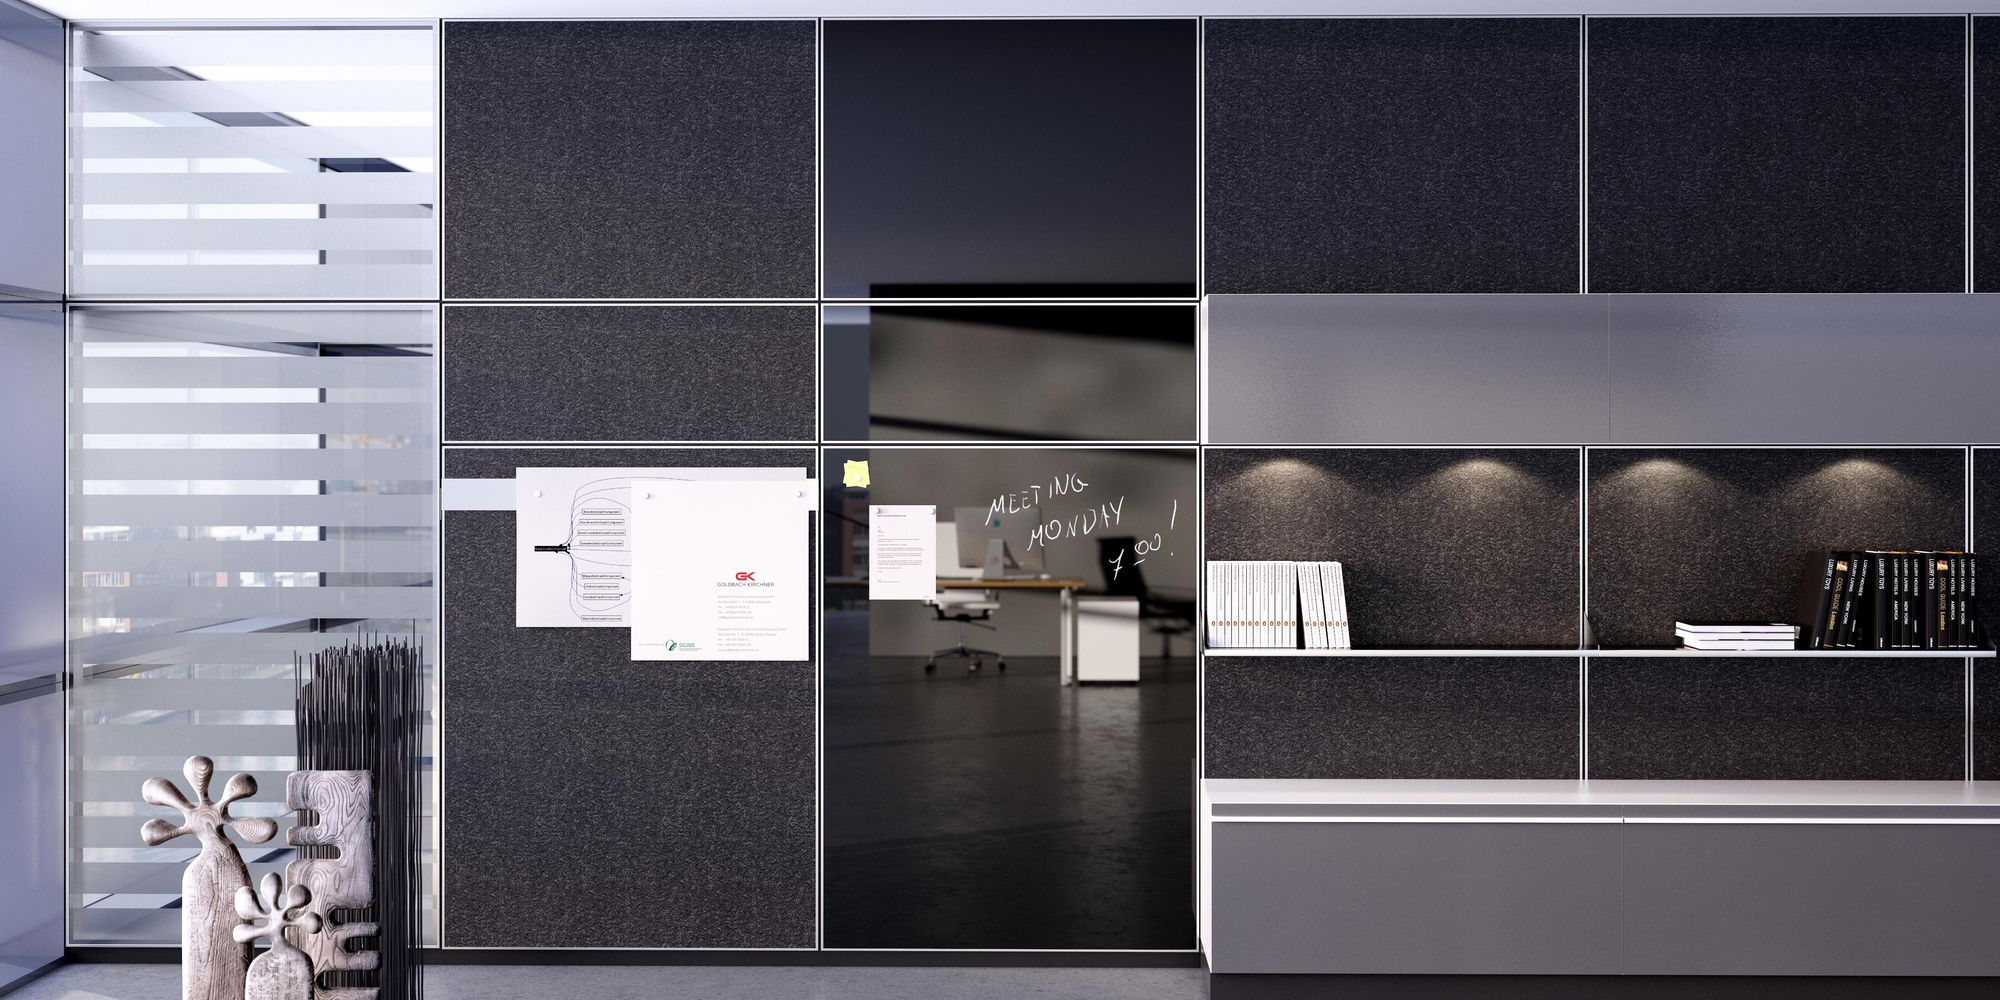 An office wall plus storage options with active acoustic surfaces